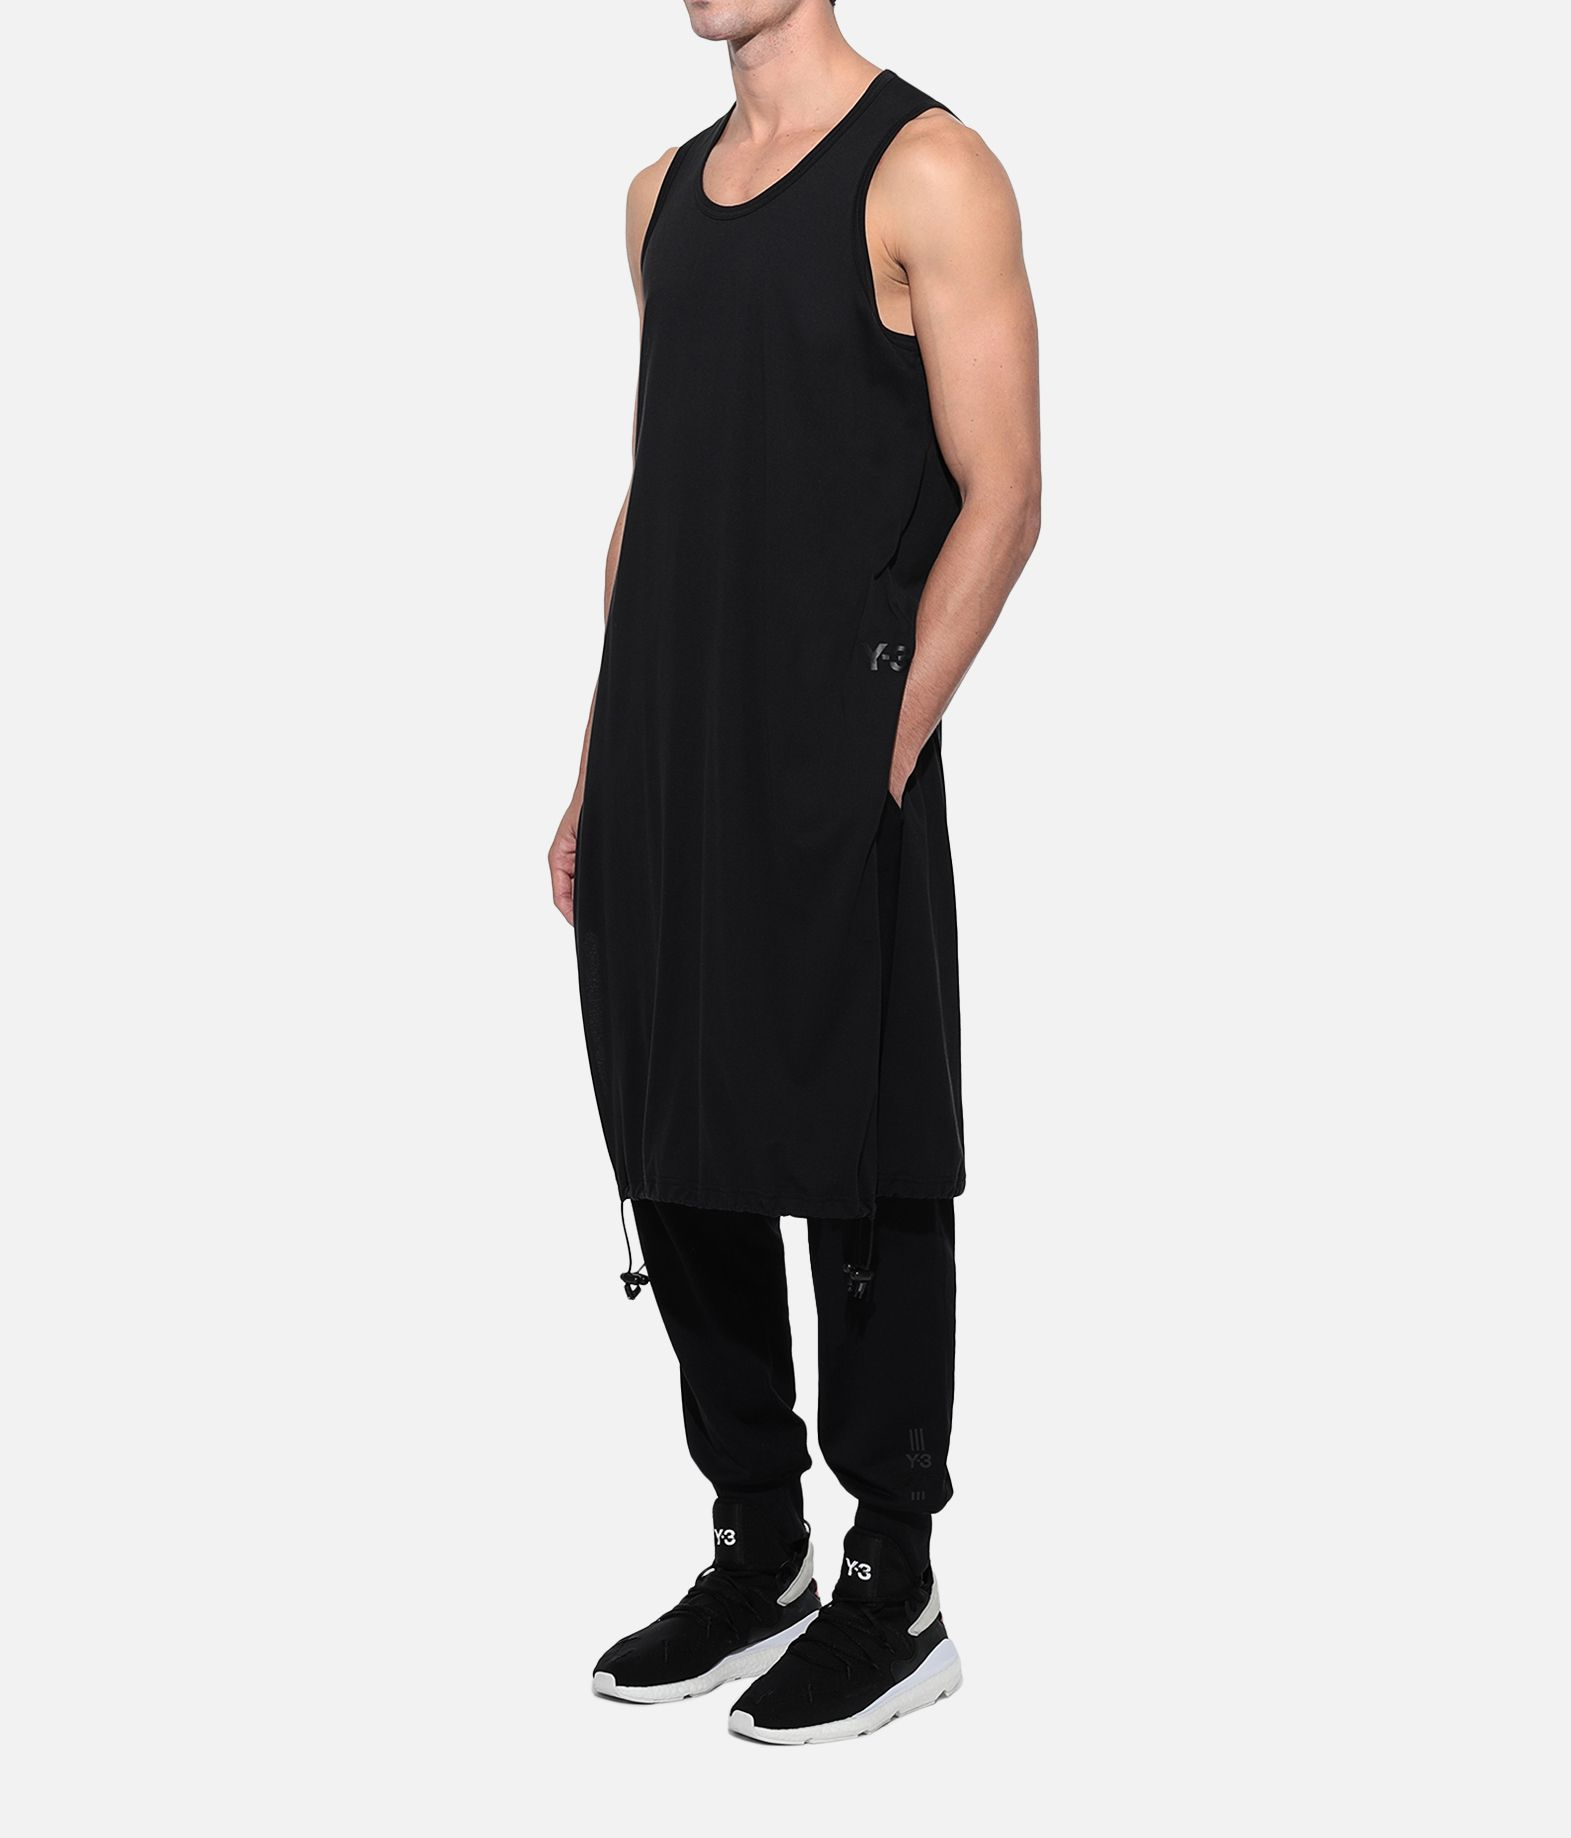 Y-3 Y-3 Drawstring Long Tank Top  Canotta Uomo e